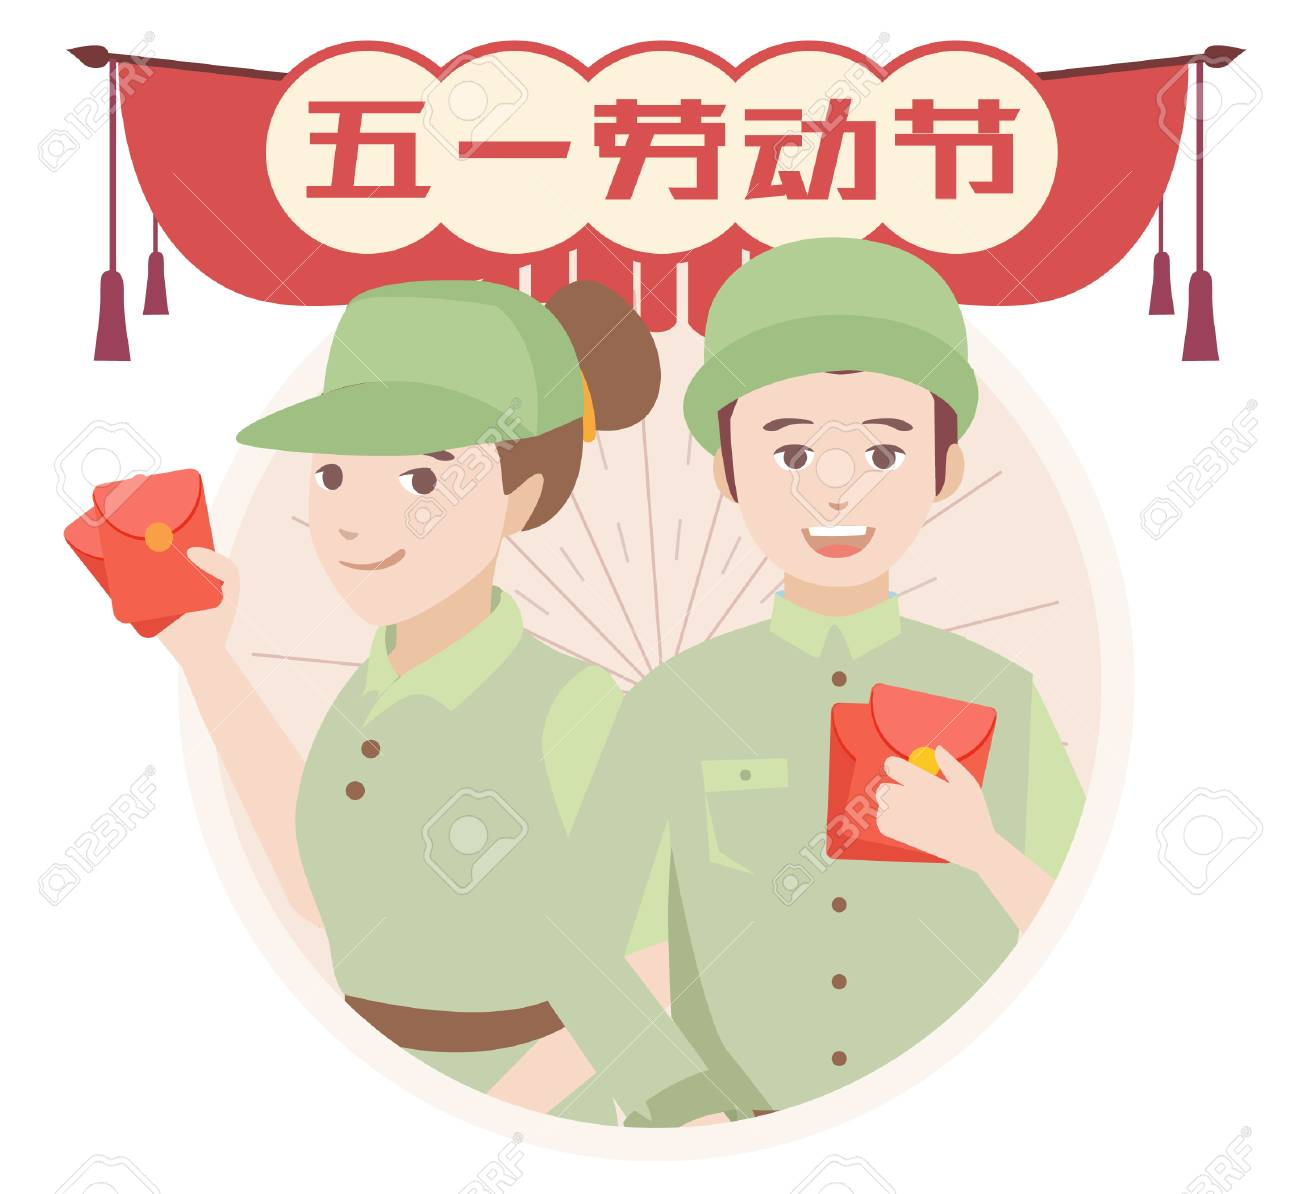 Labor Day In China In May 1st